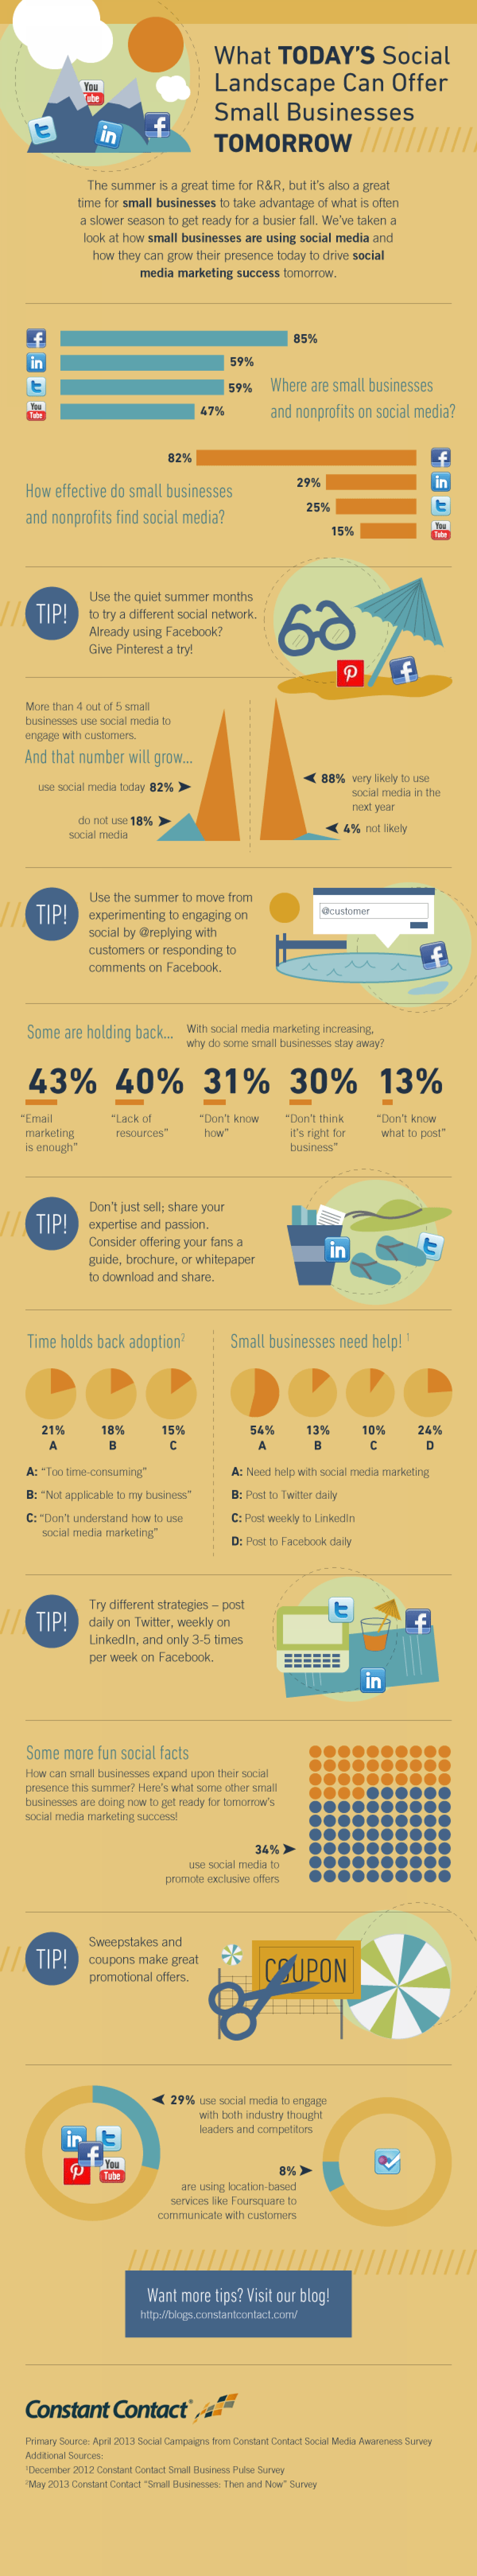 What Today's Social Landscape Can Offer Small Businesses Tomorrow Infographic